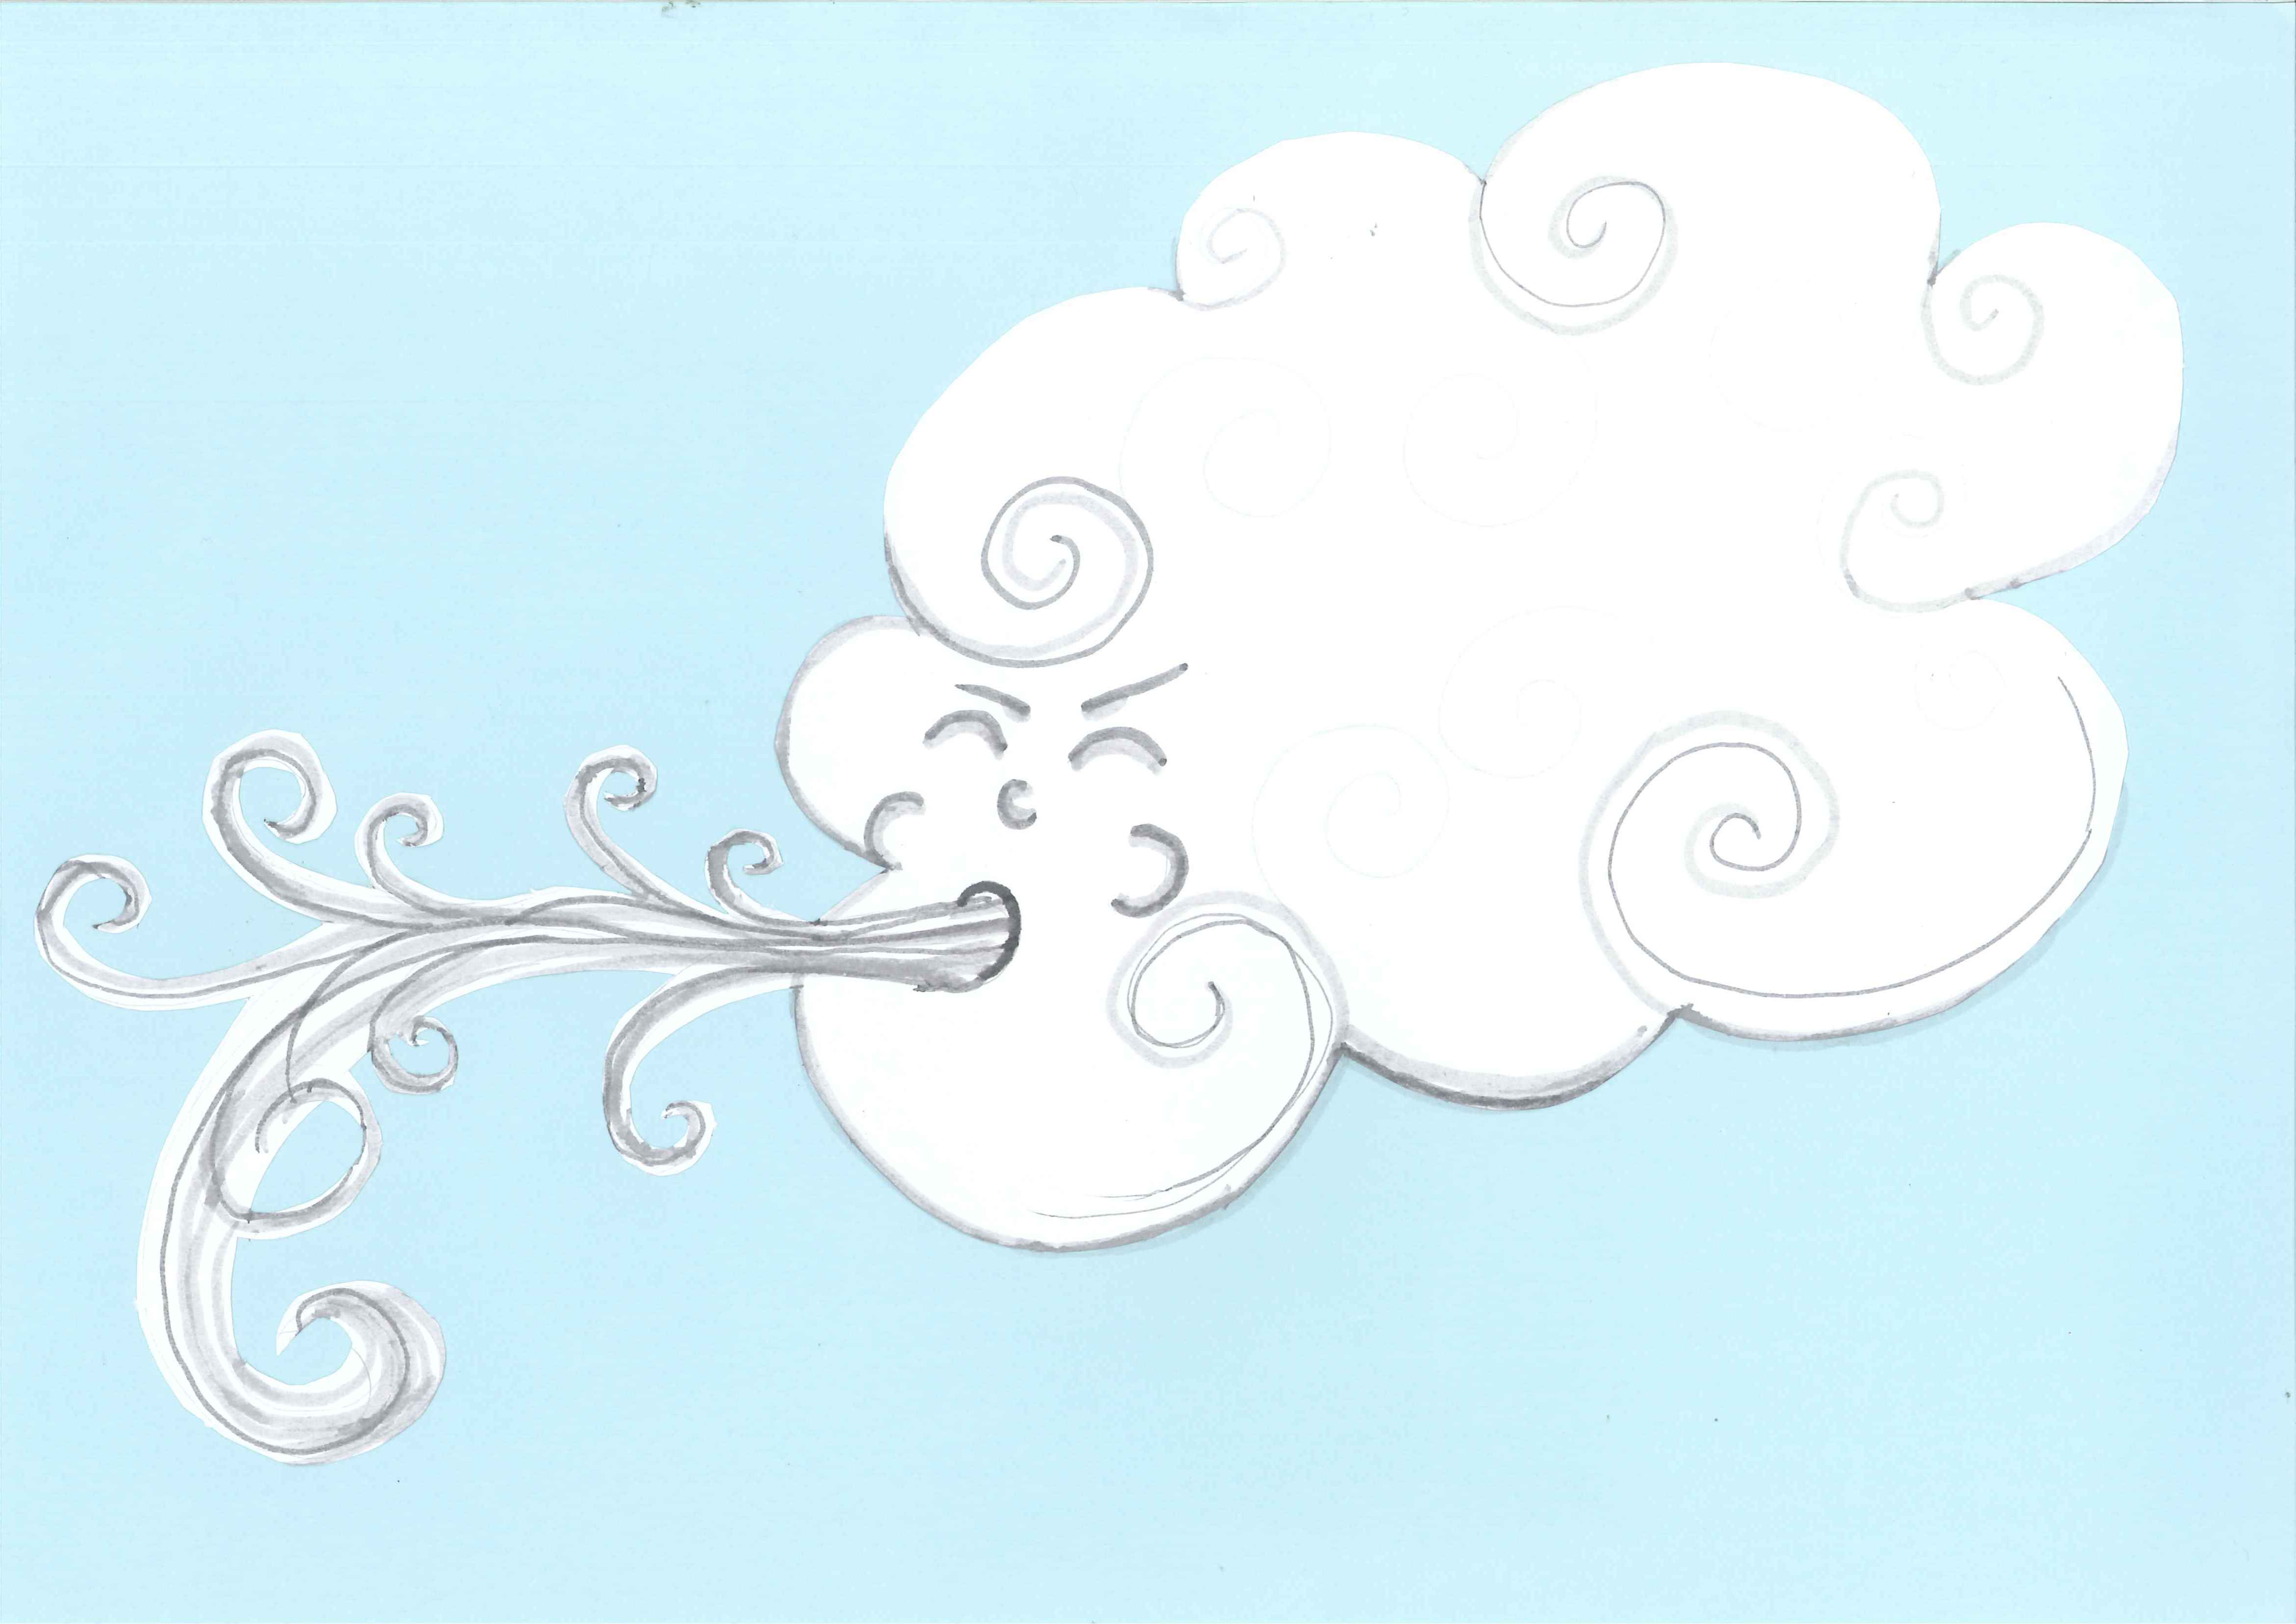 Wind clipart foggy weather Clipartion Rainy com Best Windy